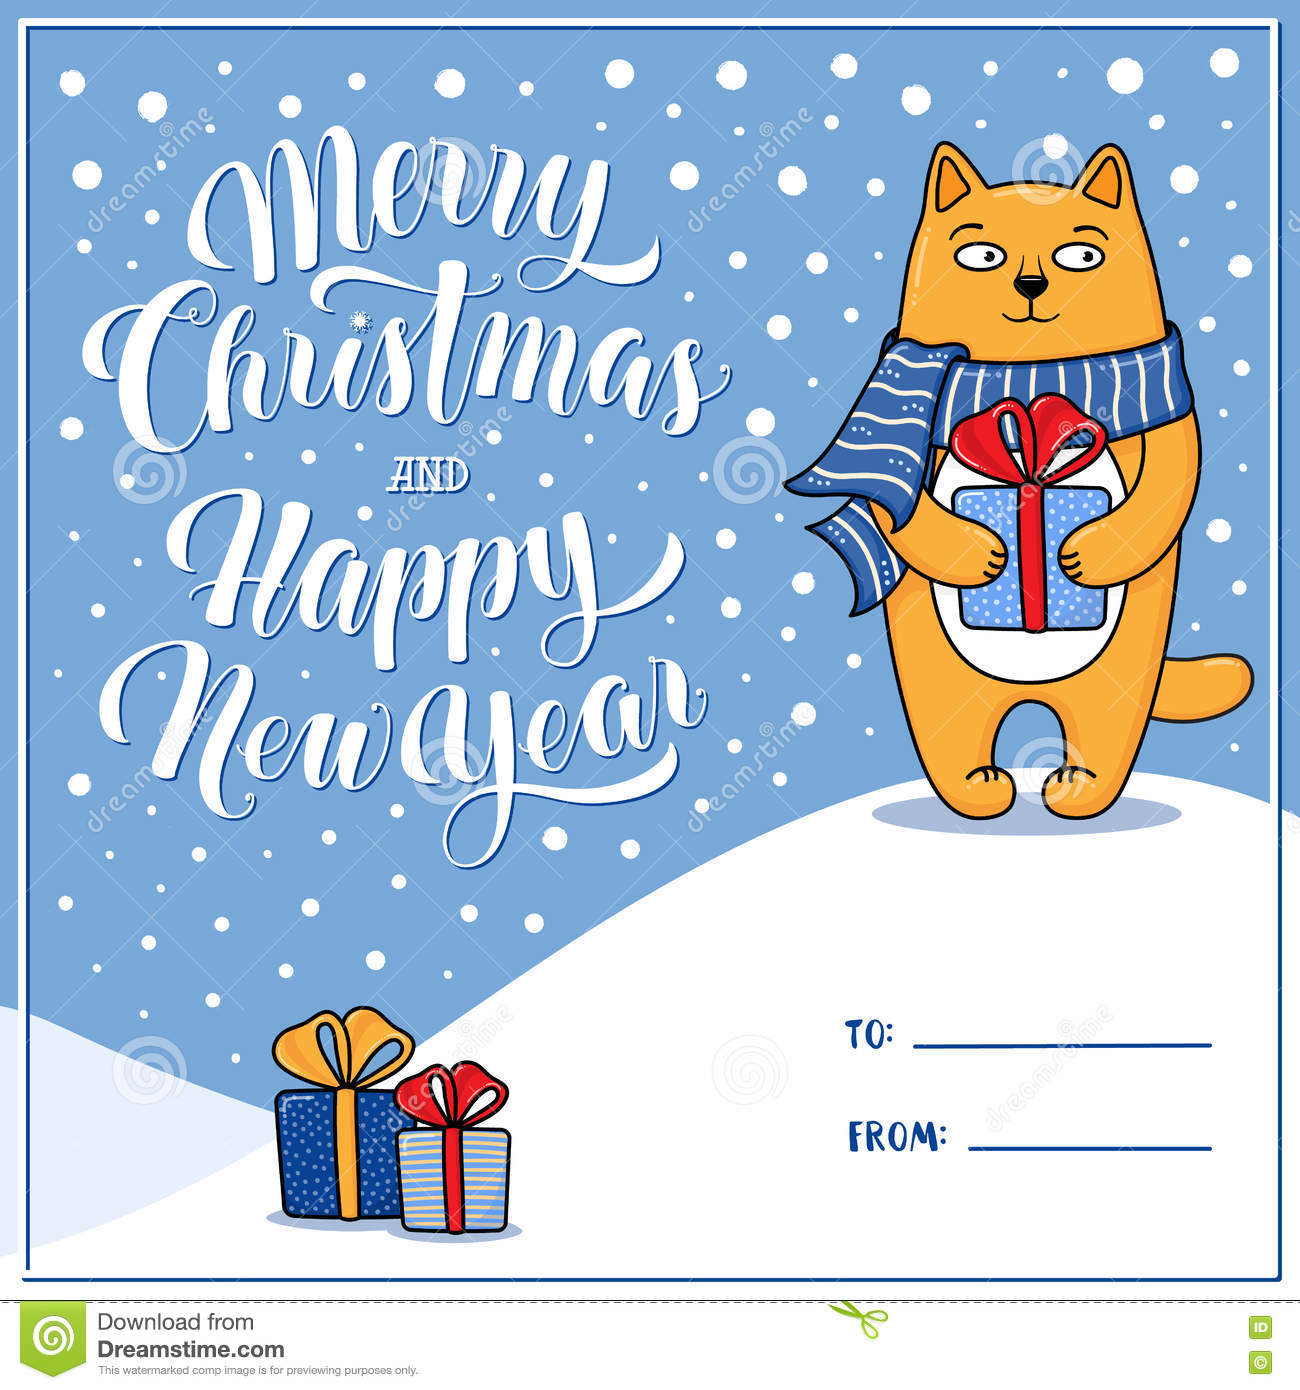 Merry Christmas And Happy New Year Greeting Card With Cat Stock